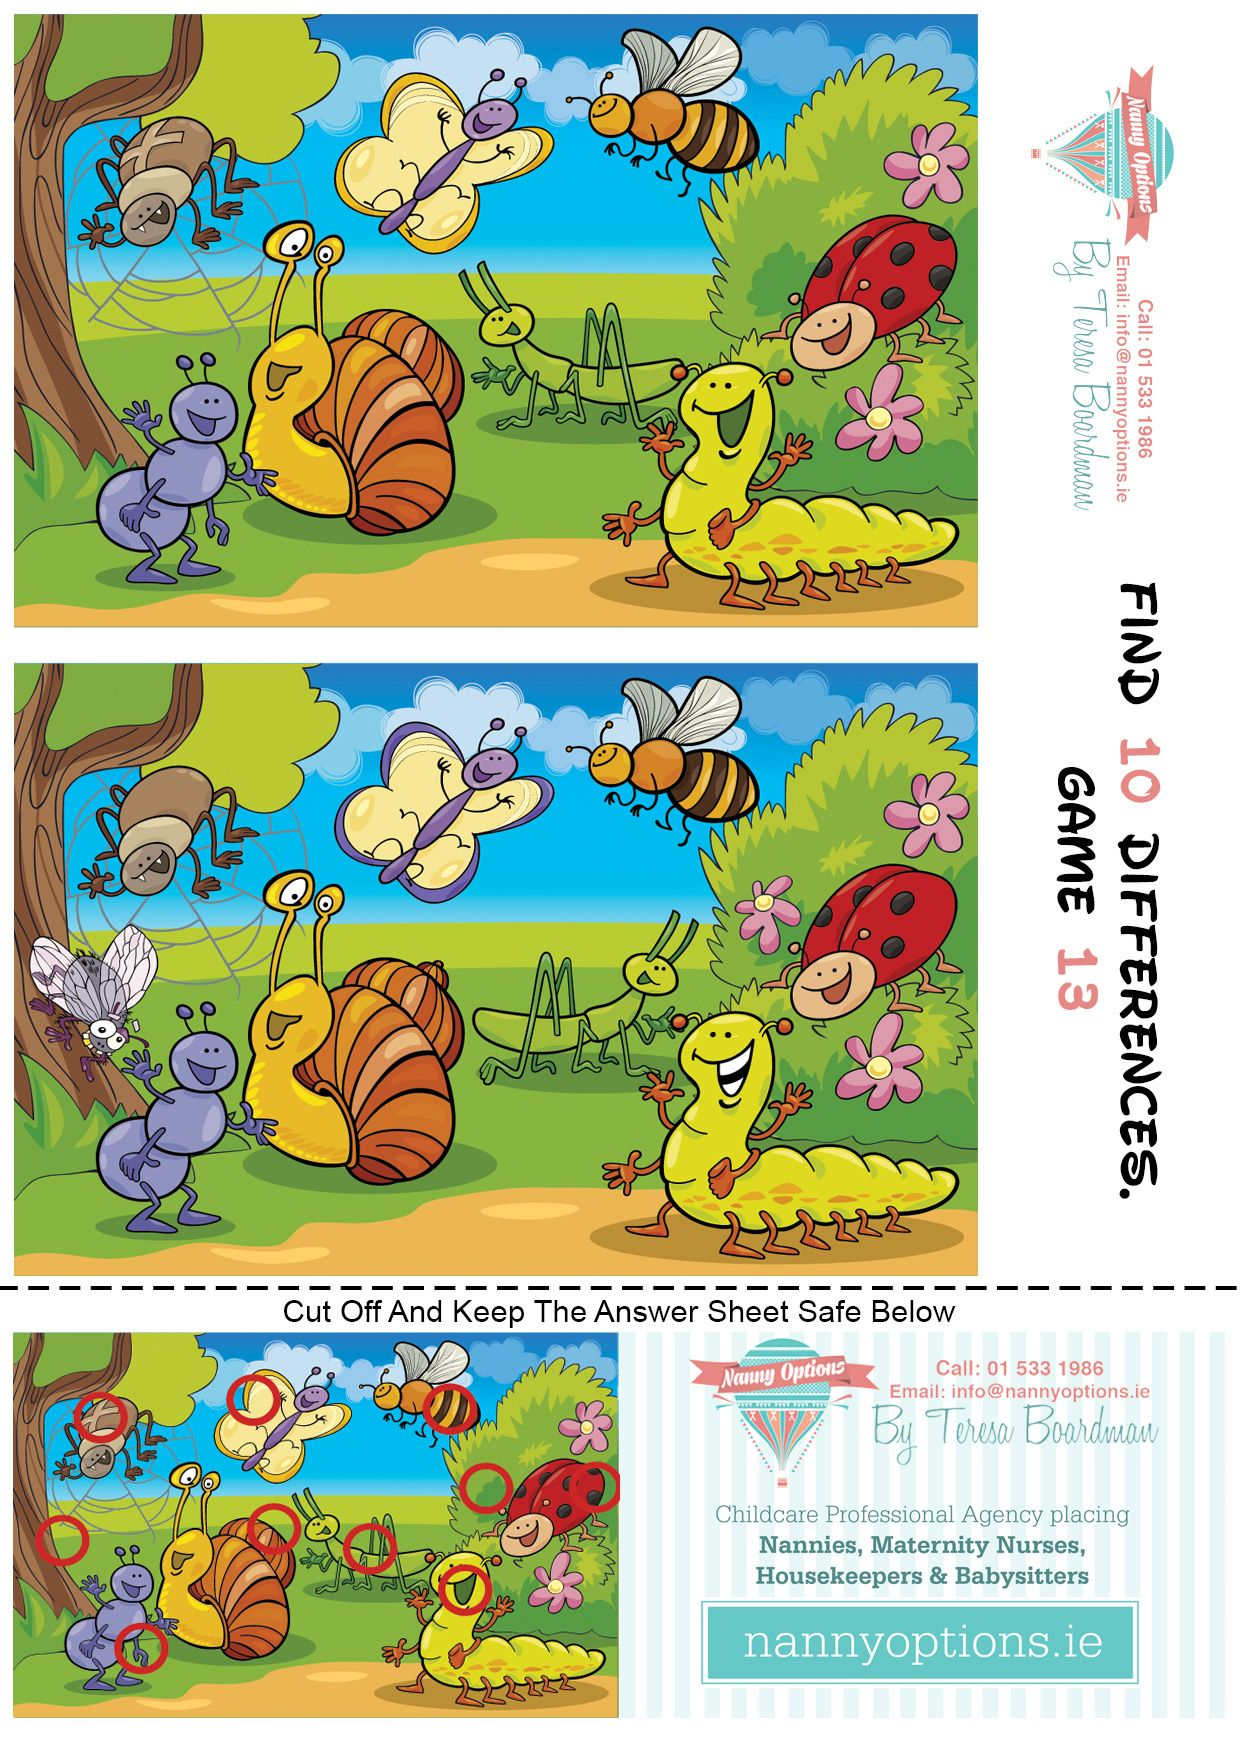 Find 10 Differences 13 Curated By S